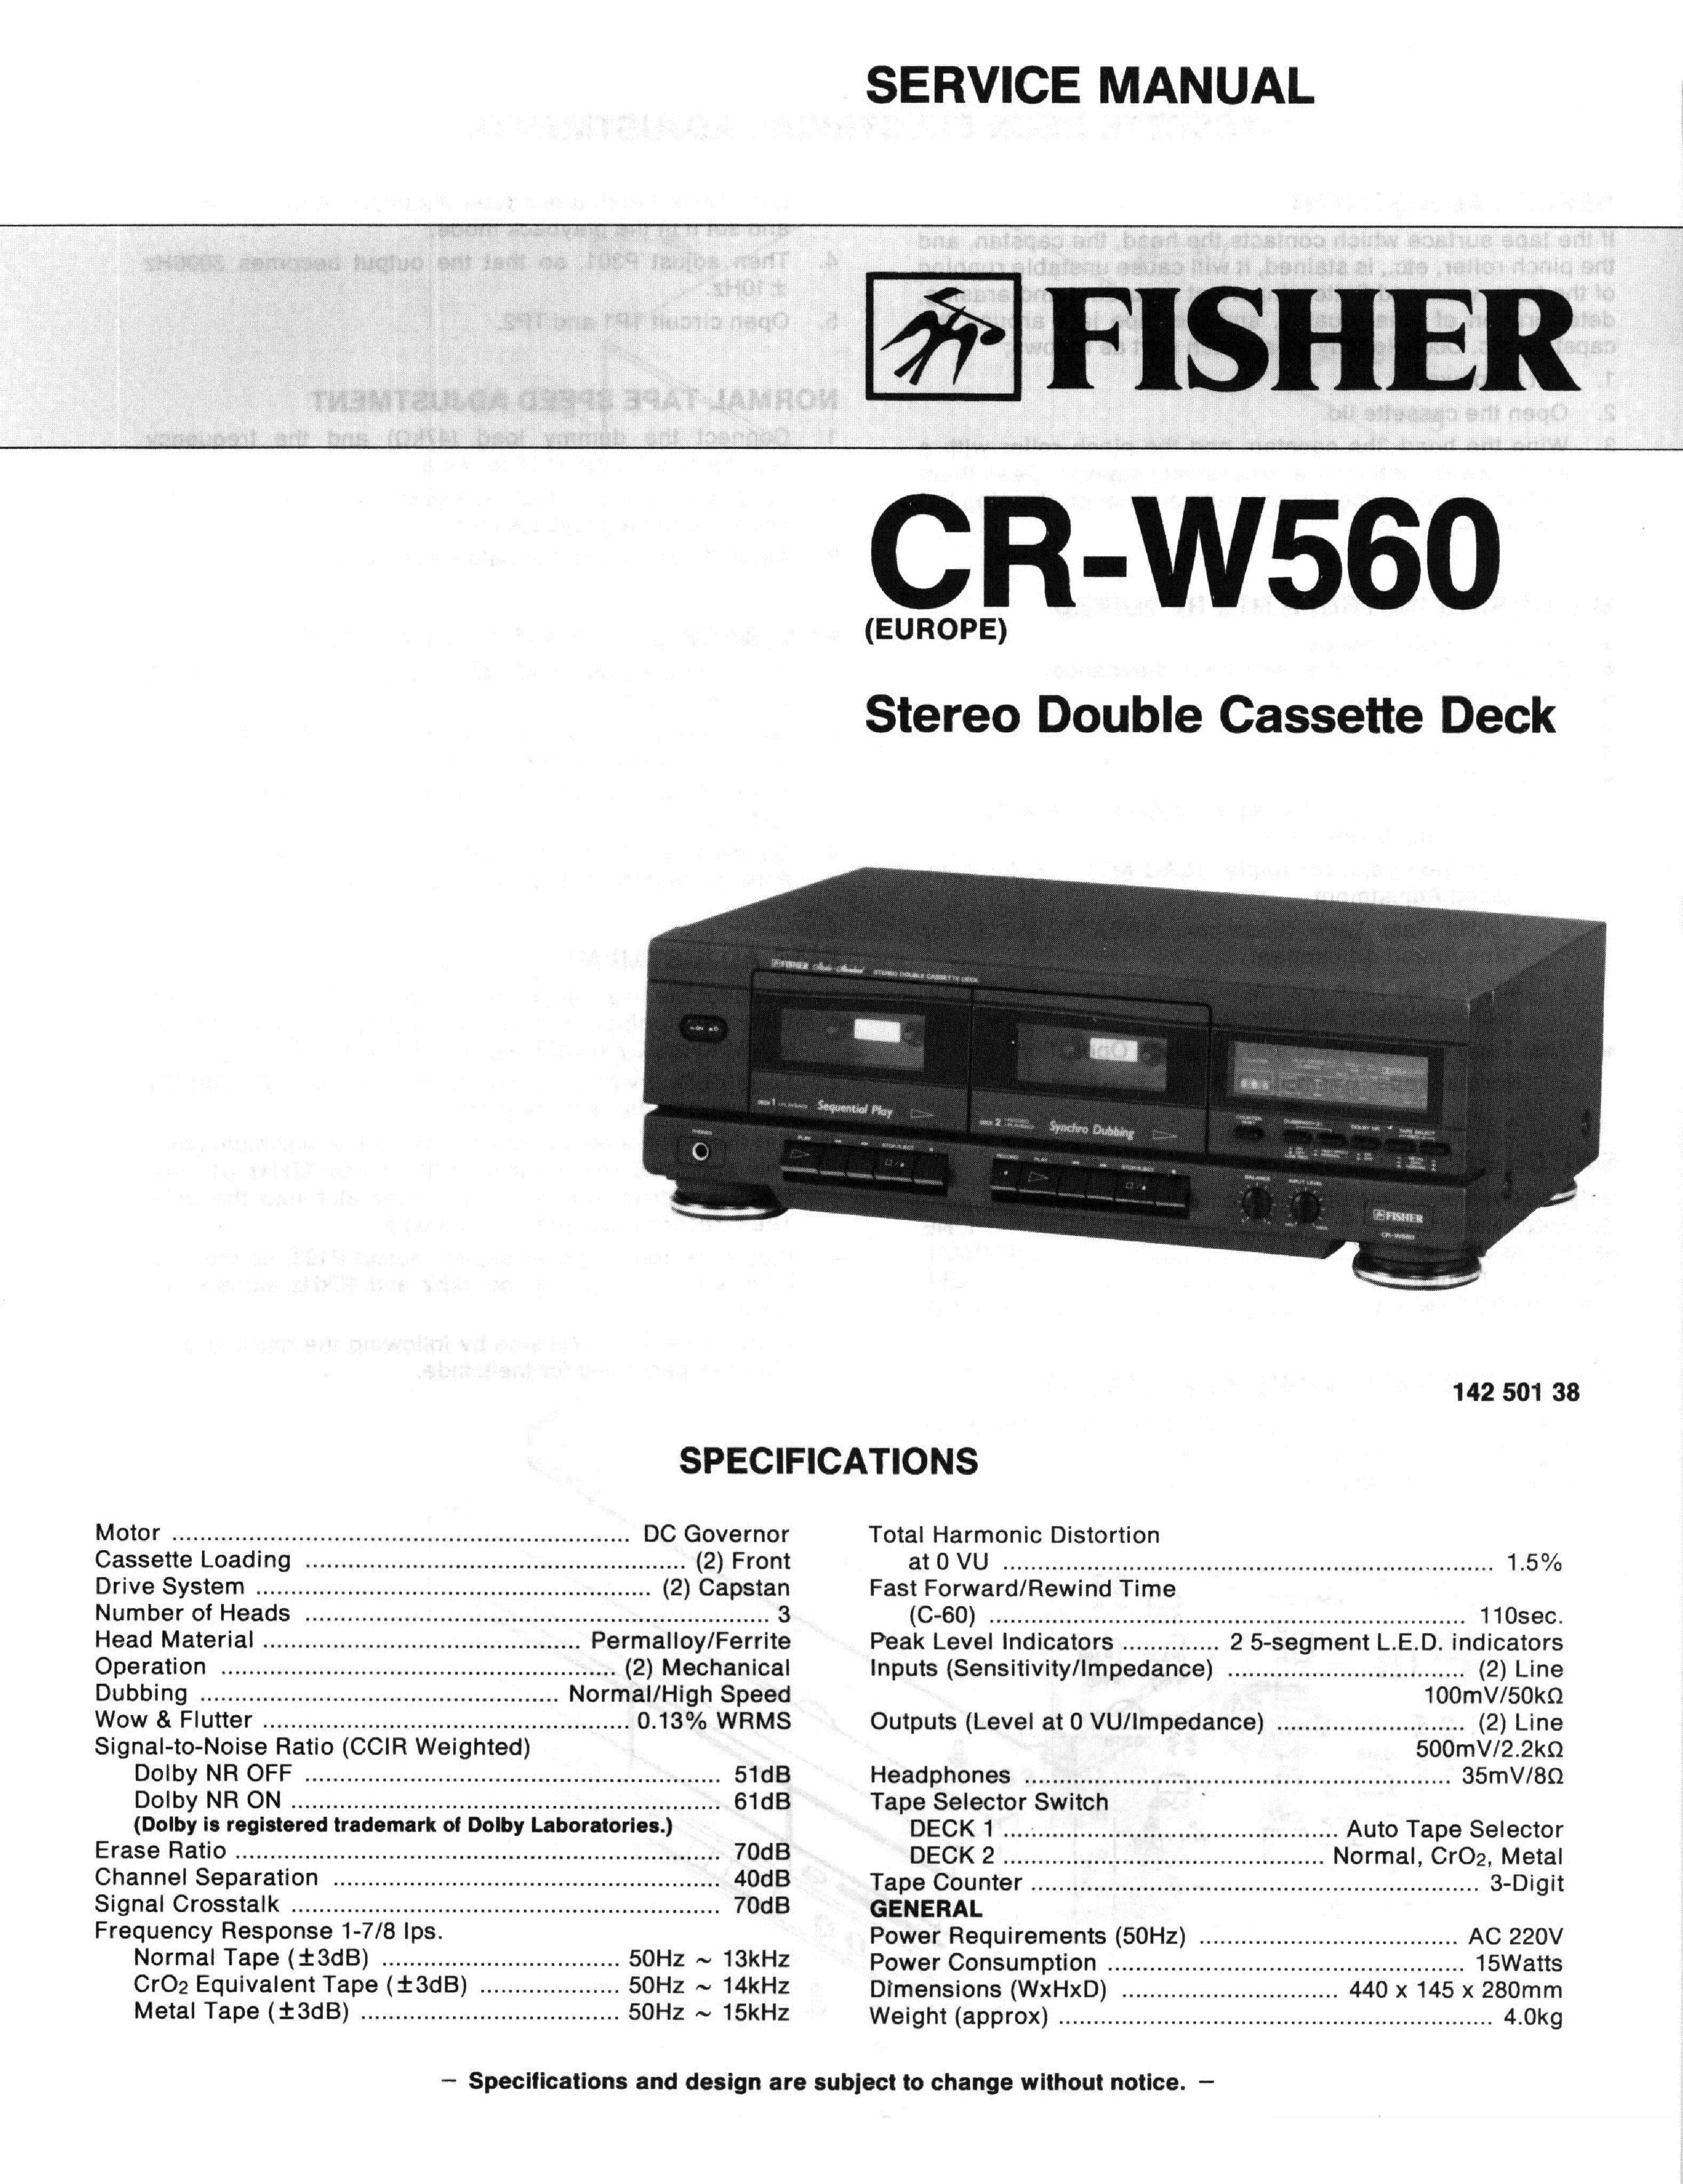 FISHER CR-W560 SCH service manual (1st page)